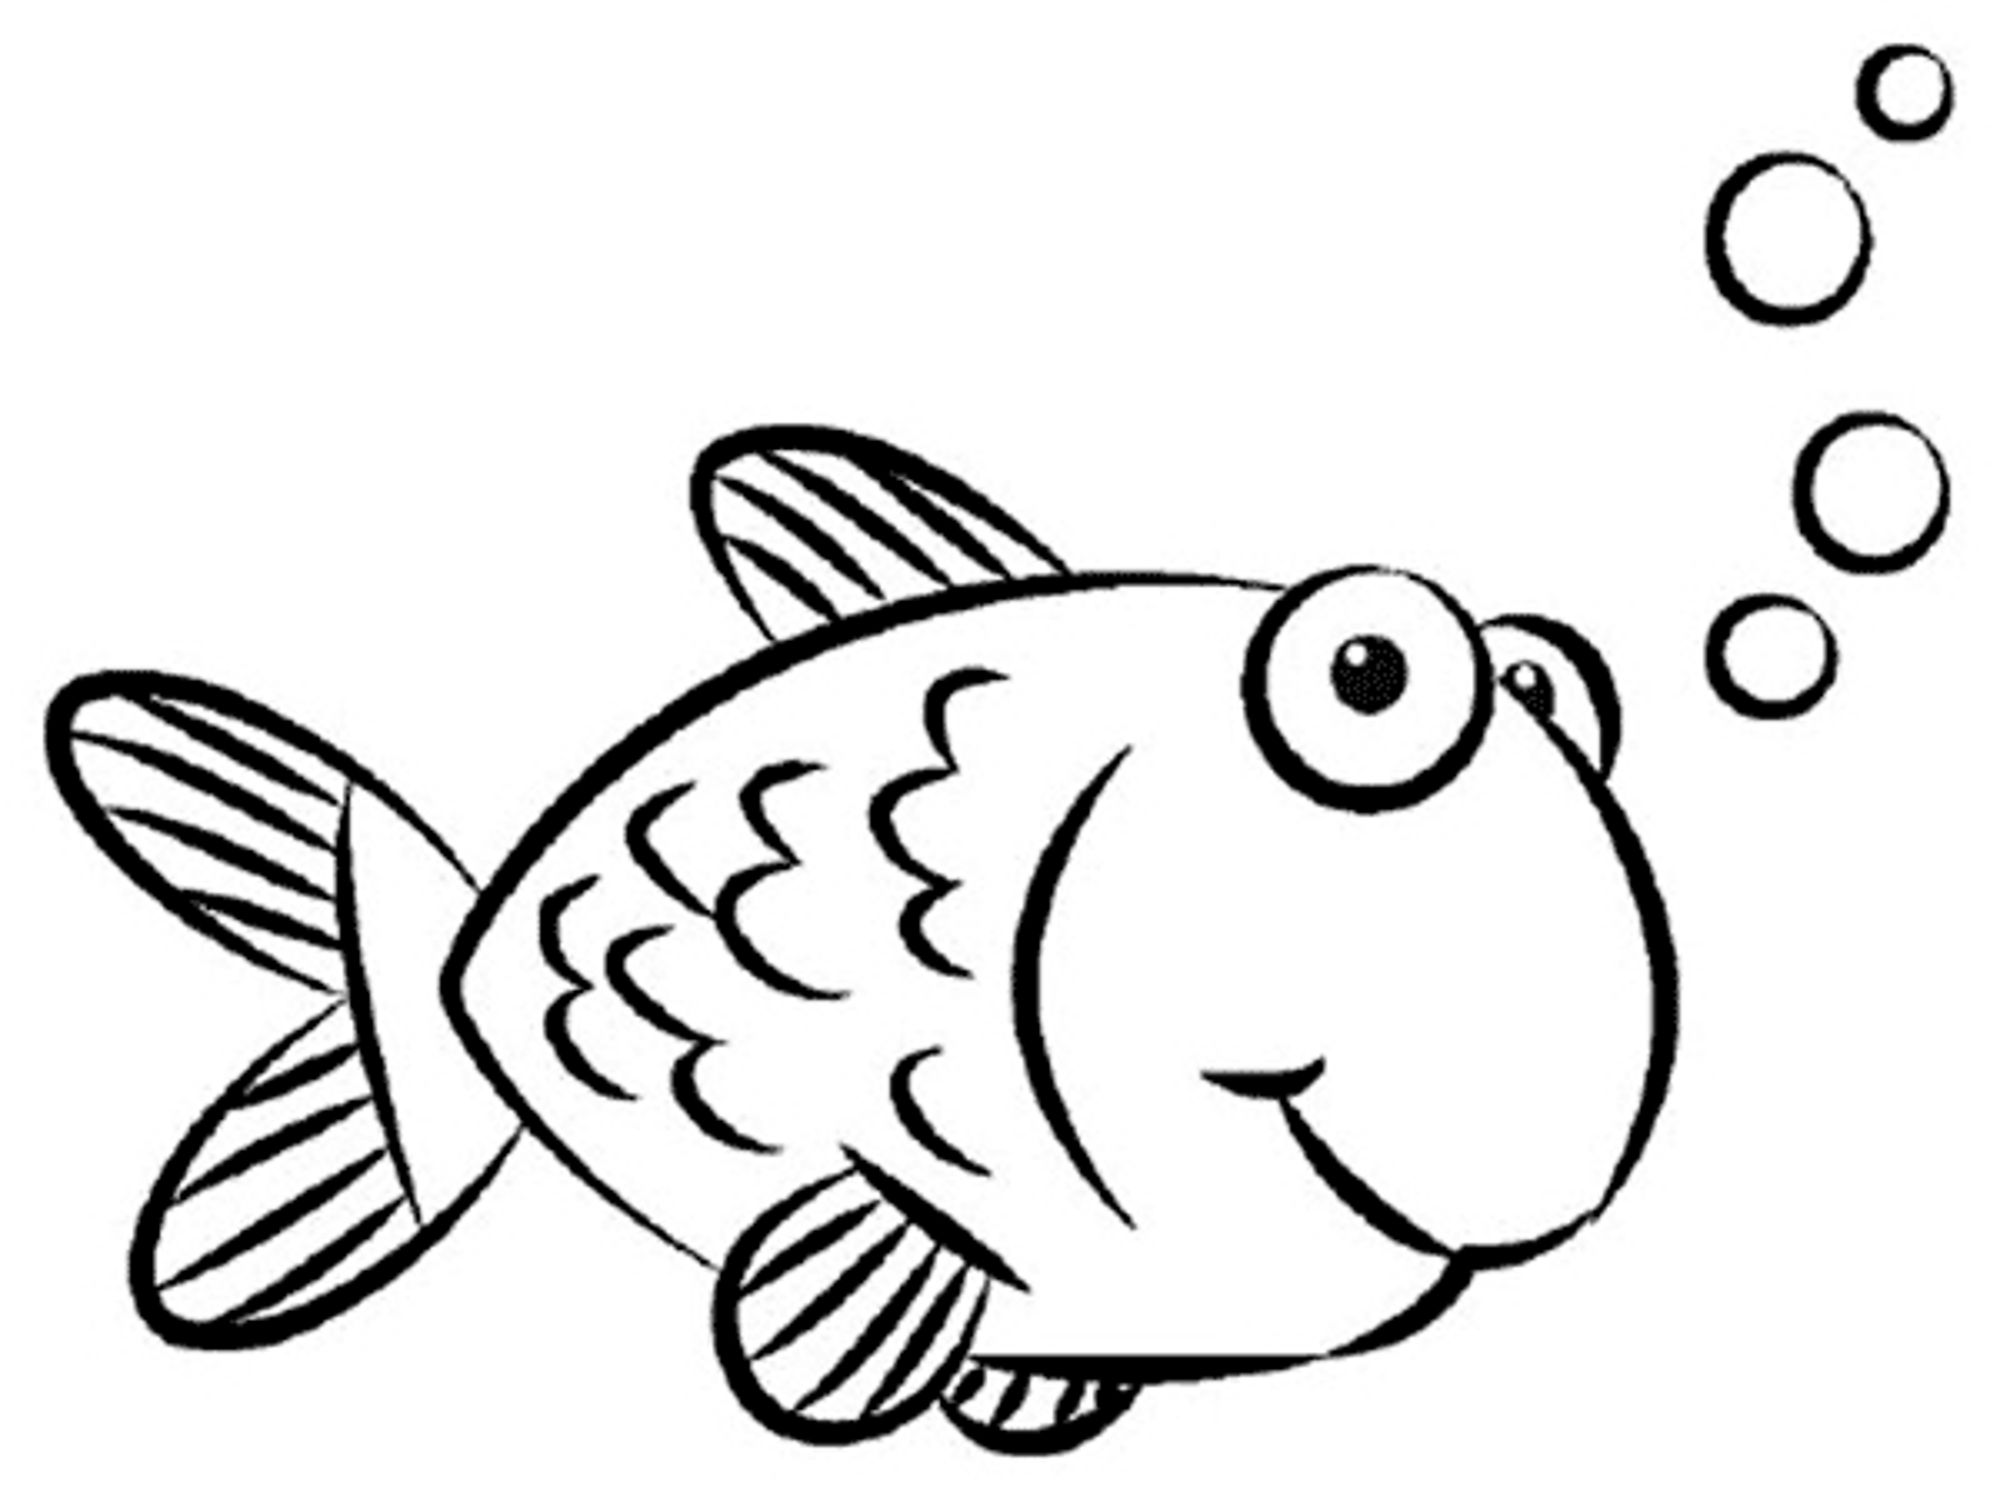 fish coloring pages to print - photo#42